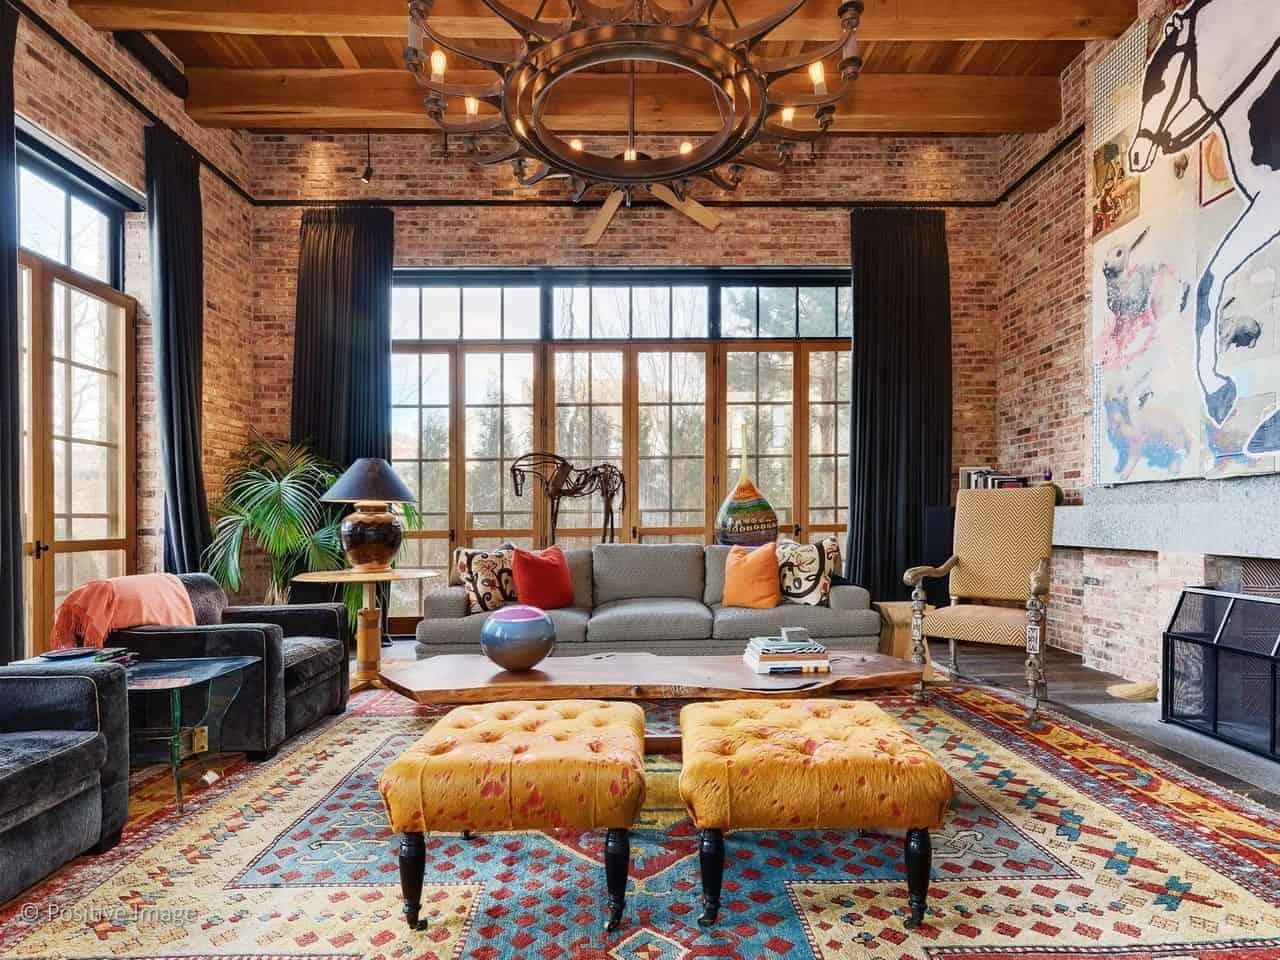 The wooden ceiling with large exposed wooden beams are a perfect match for the brick walls surrounding this industrial-style living room that has a large gray couch facing a rustic coffee table in the middle of a colorful patterned area rug.